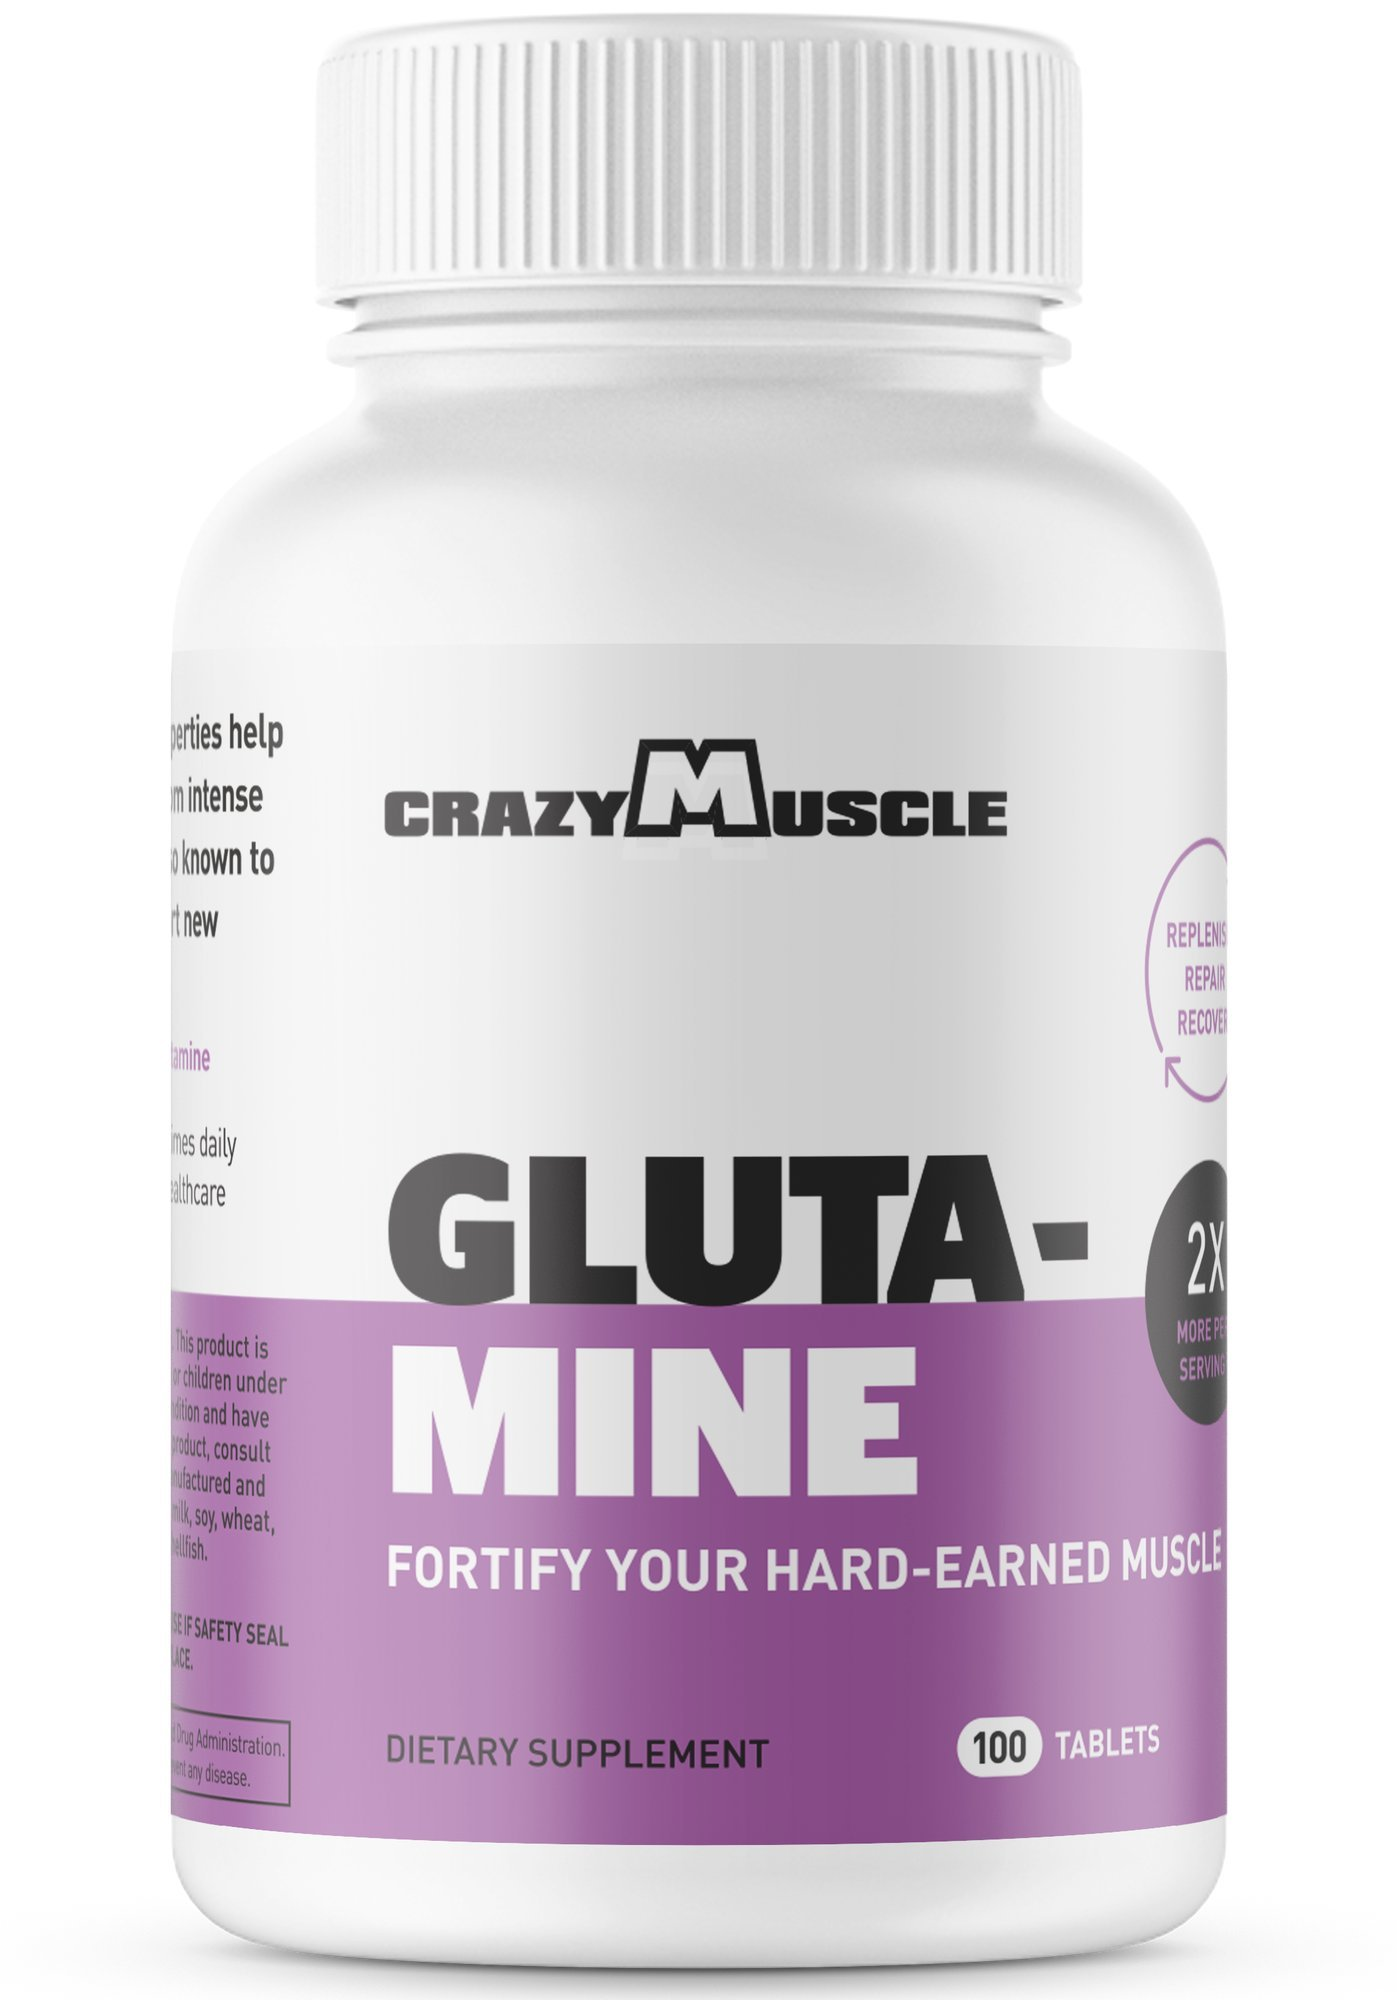 L Glutamine Capsules with 1000mg per Pill by Crazy Muscle help You Maintain Muscle and Accelerate Mass Gains - 100 Tablets per Bottle